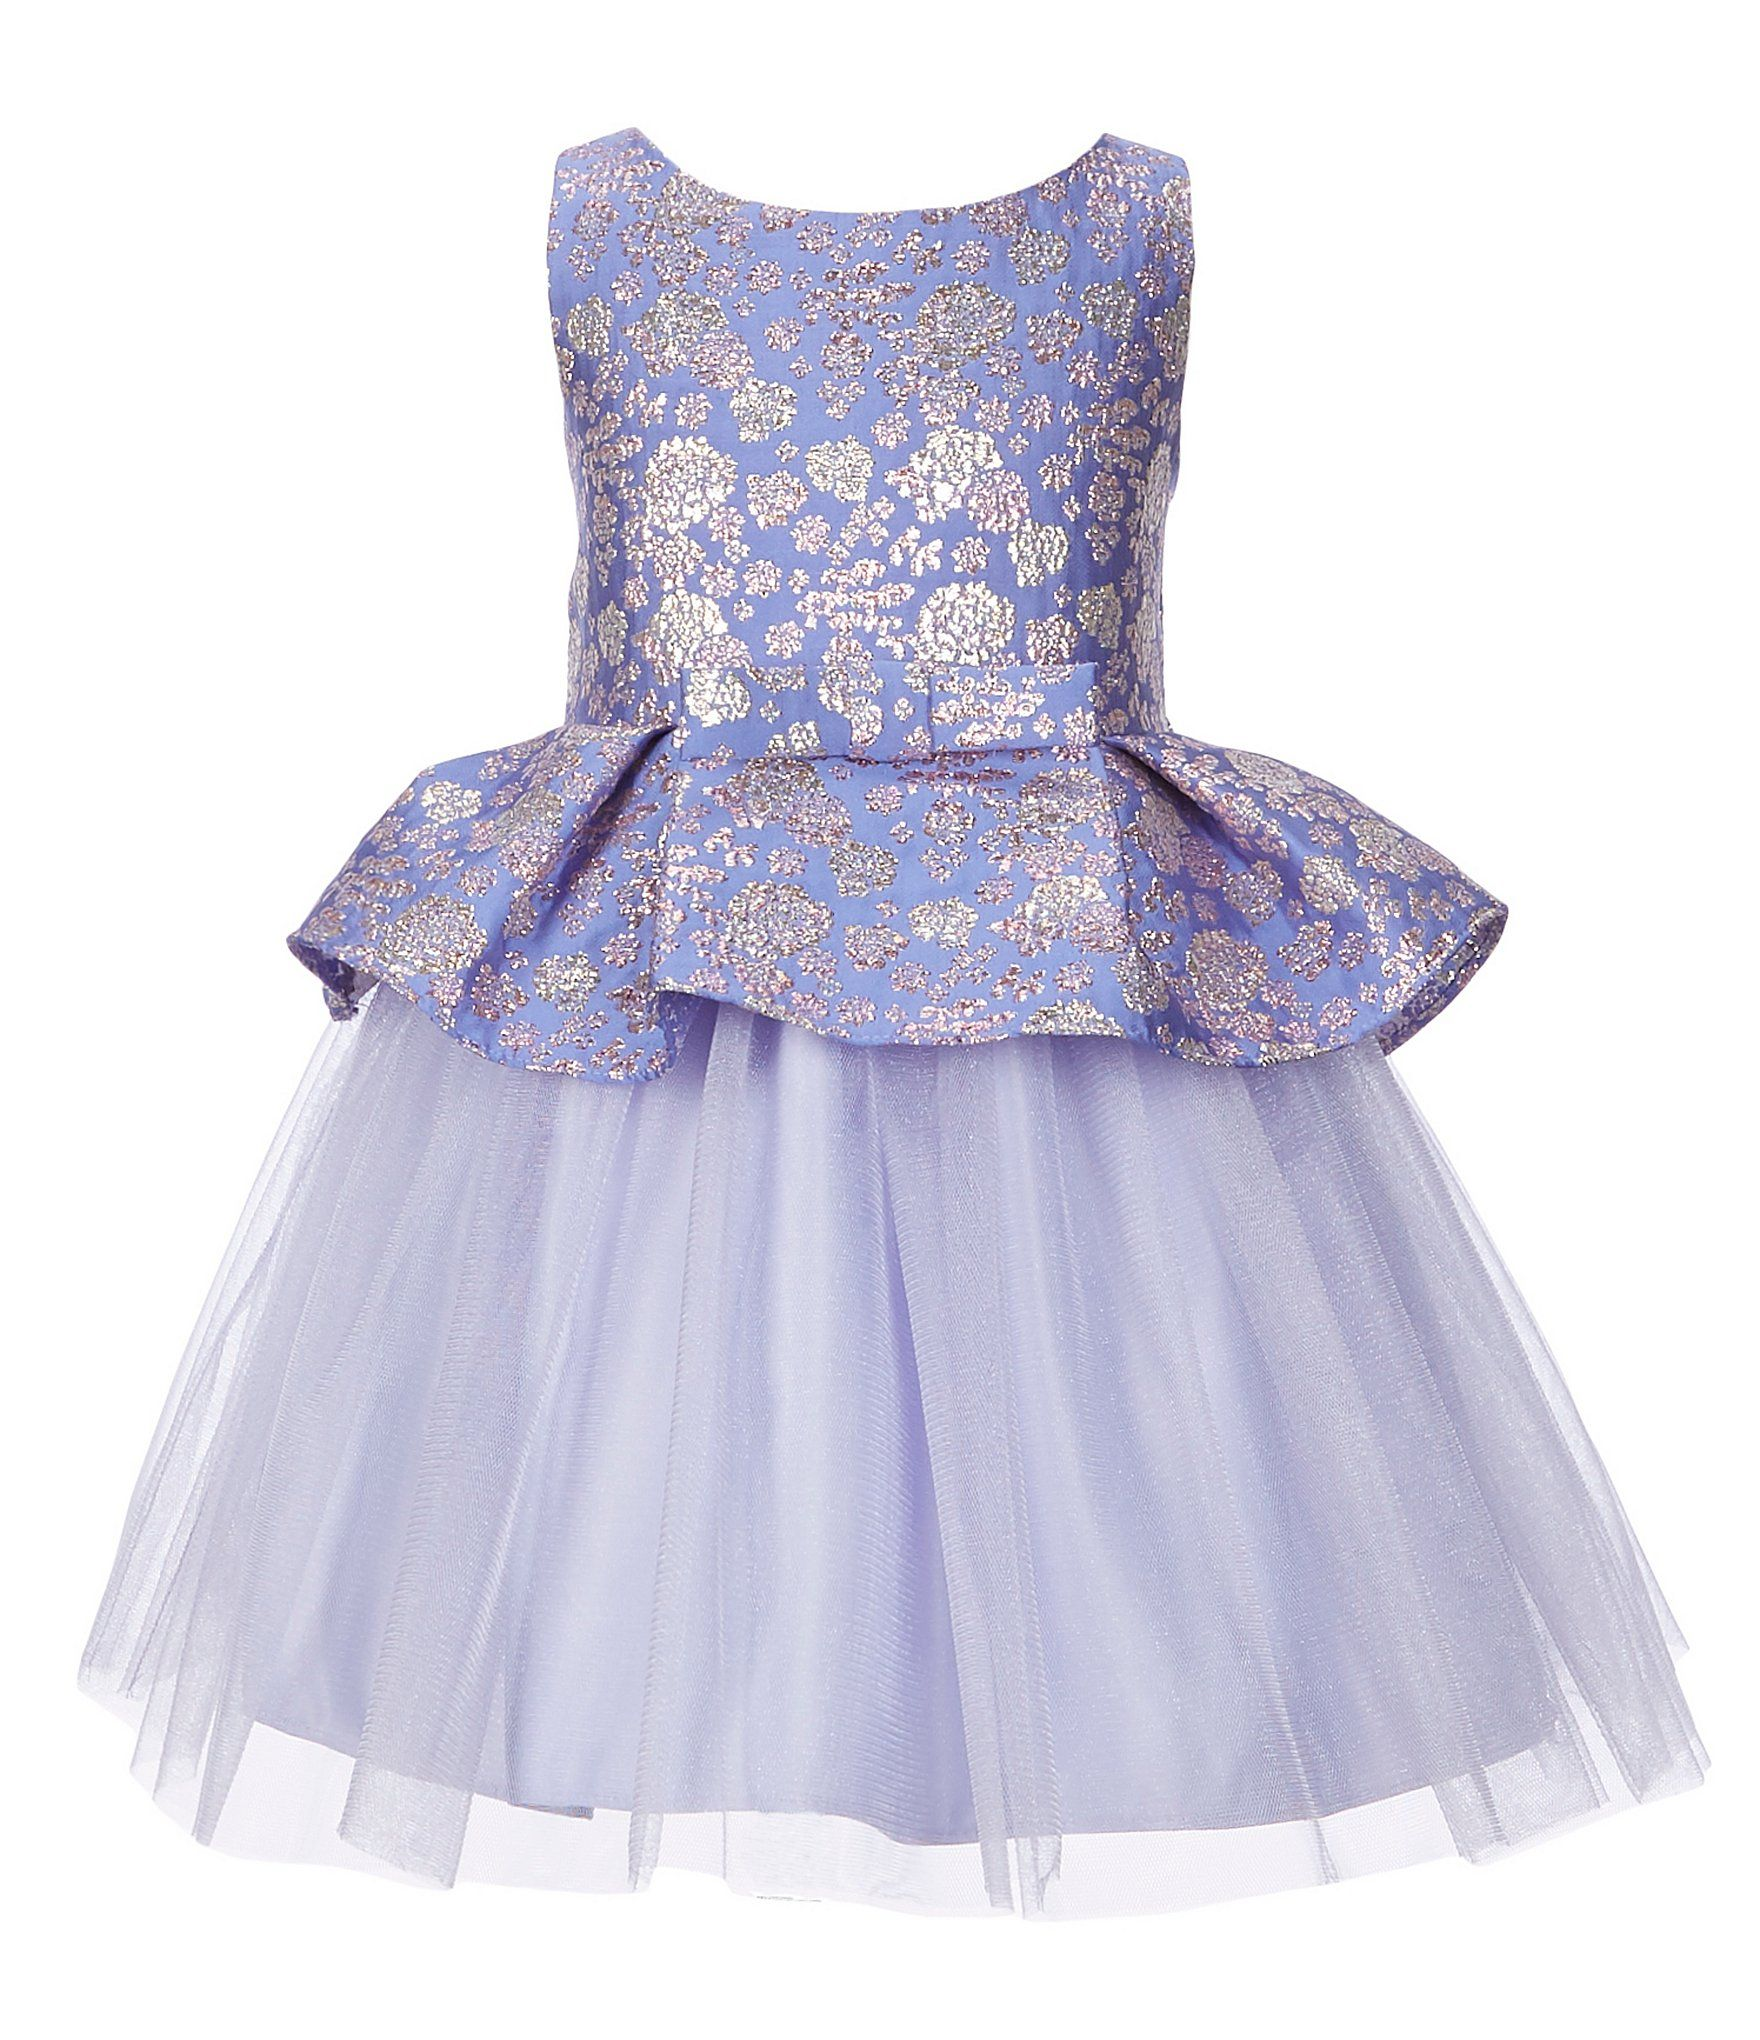 3ed29ac88d5 Shop for Sweet Kids Little Girls 2-6 Floral Metallic Peplum Fit-And-Flare  Dress at Dillards.com. Visit Dillards.com to find clothing